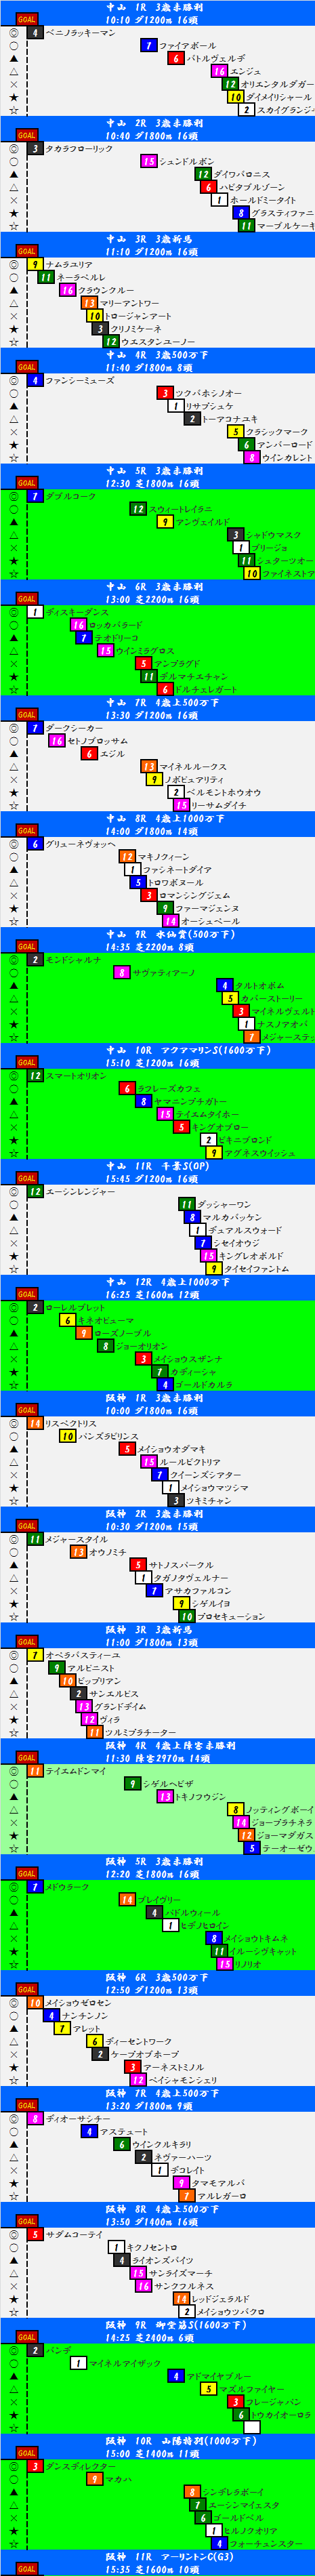 201403011.png